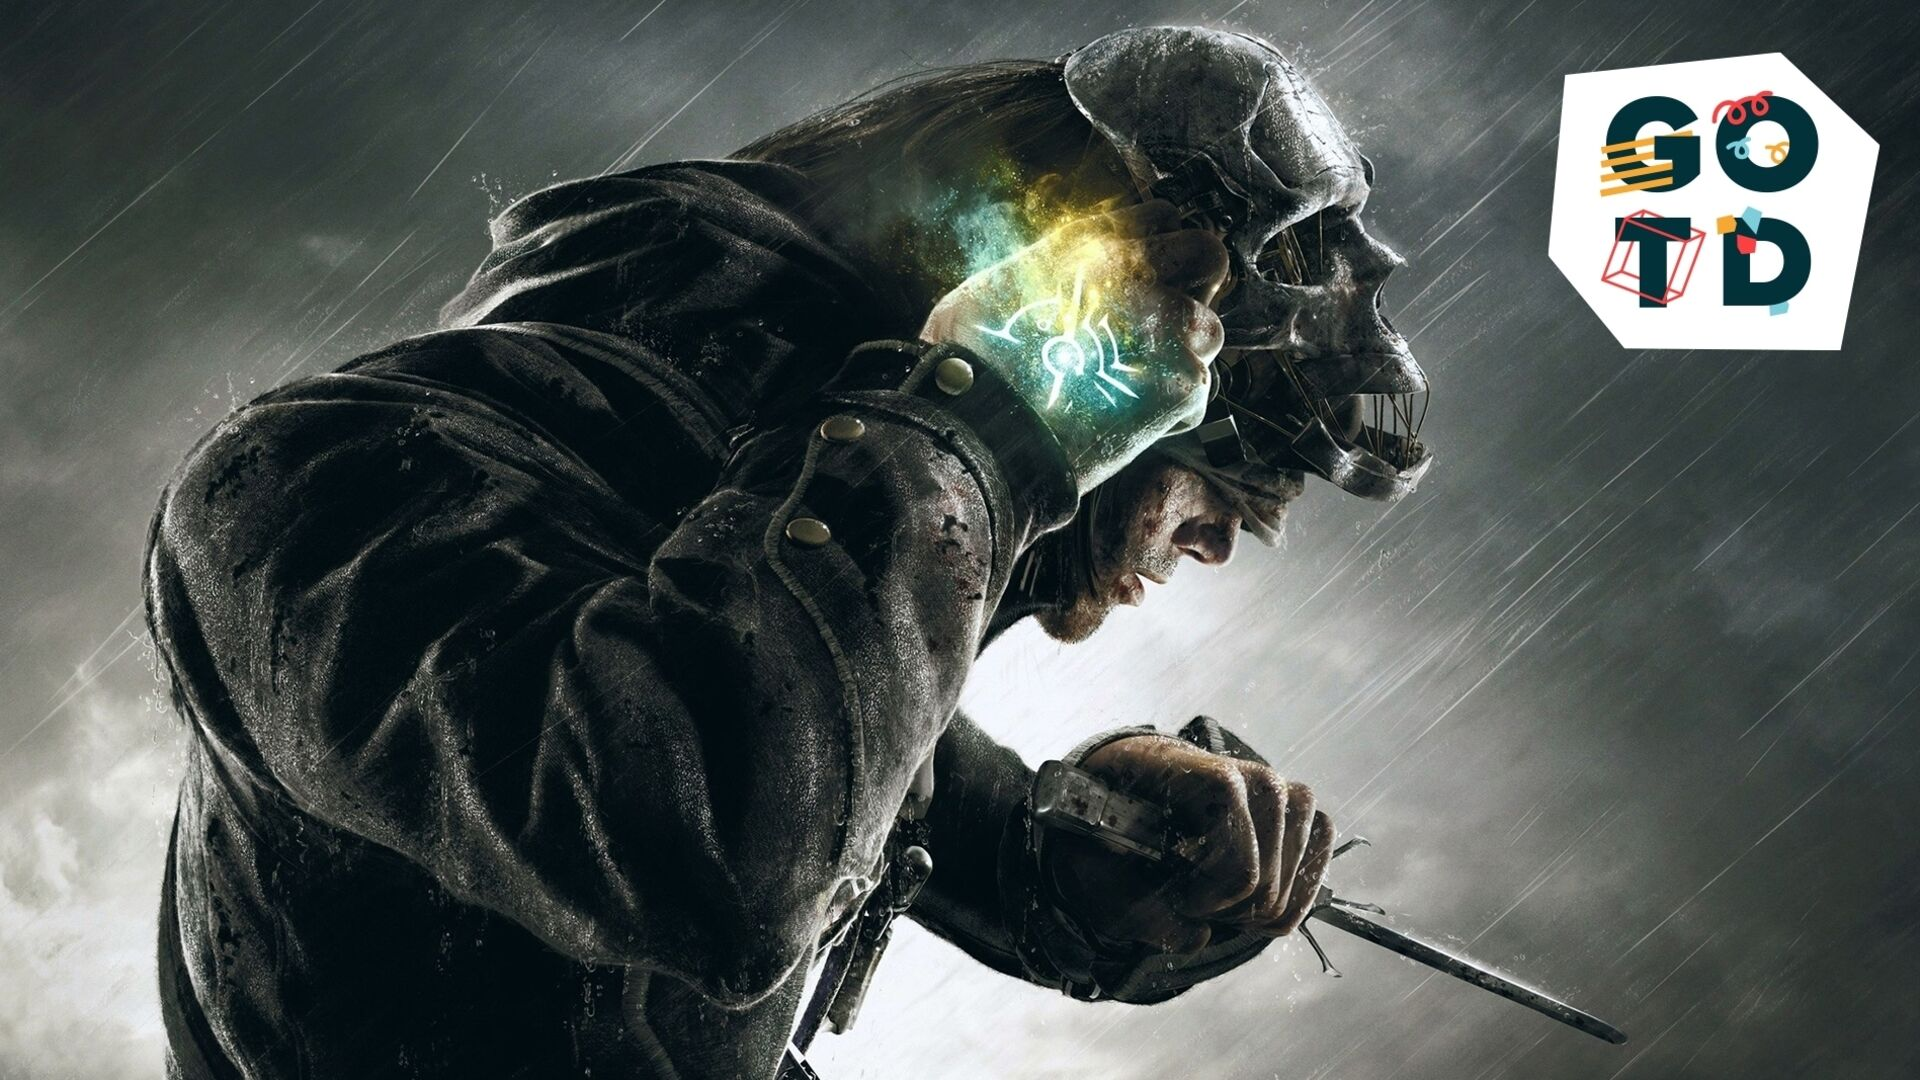 Games Of The Decade Dishonored Taught Me There Is No Right Way To